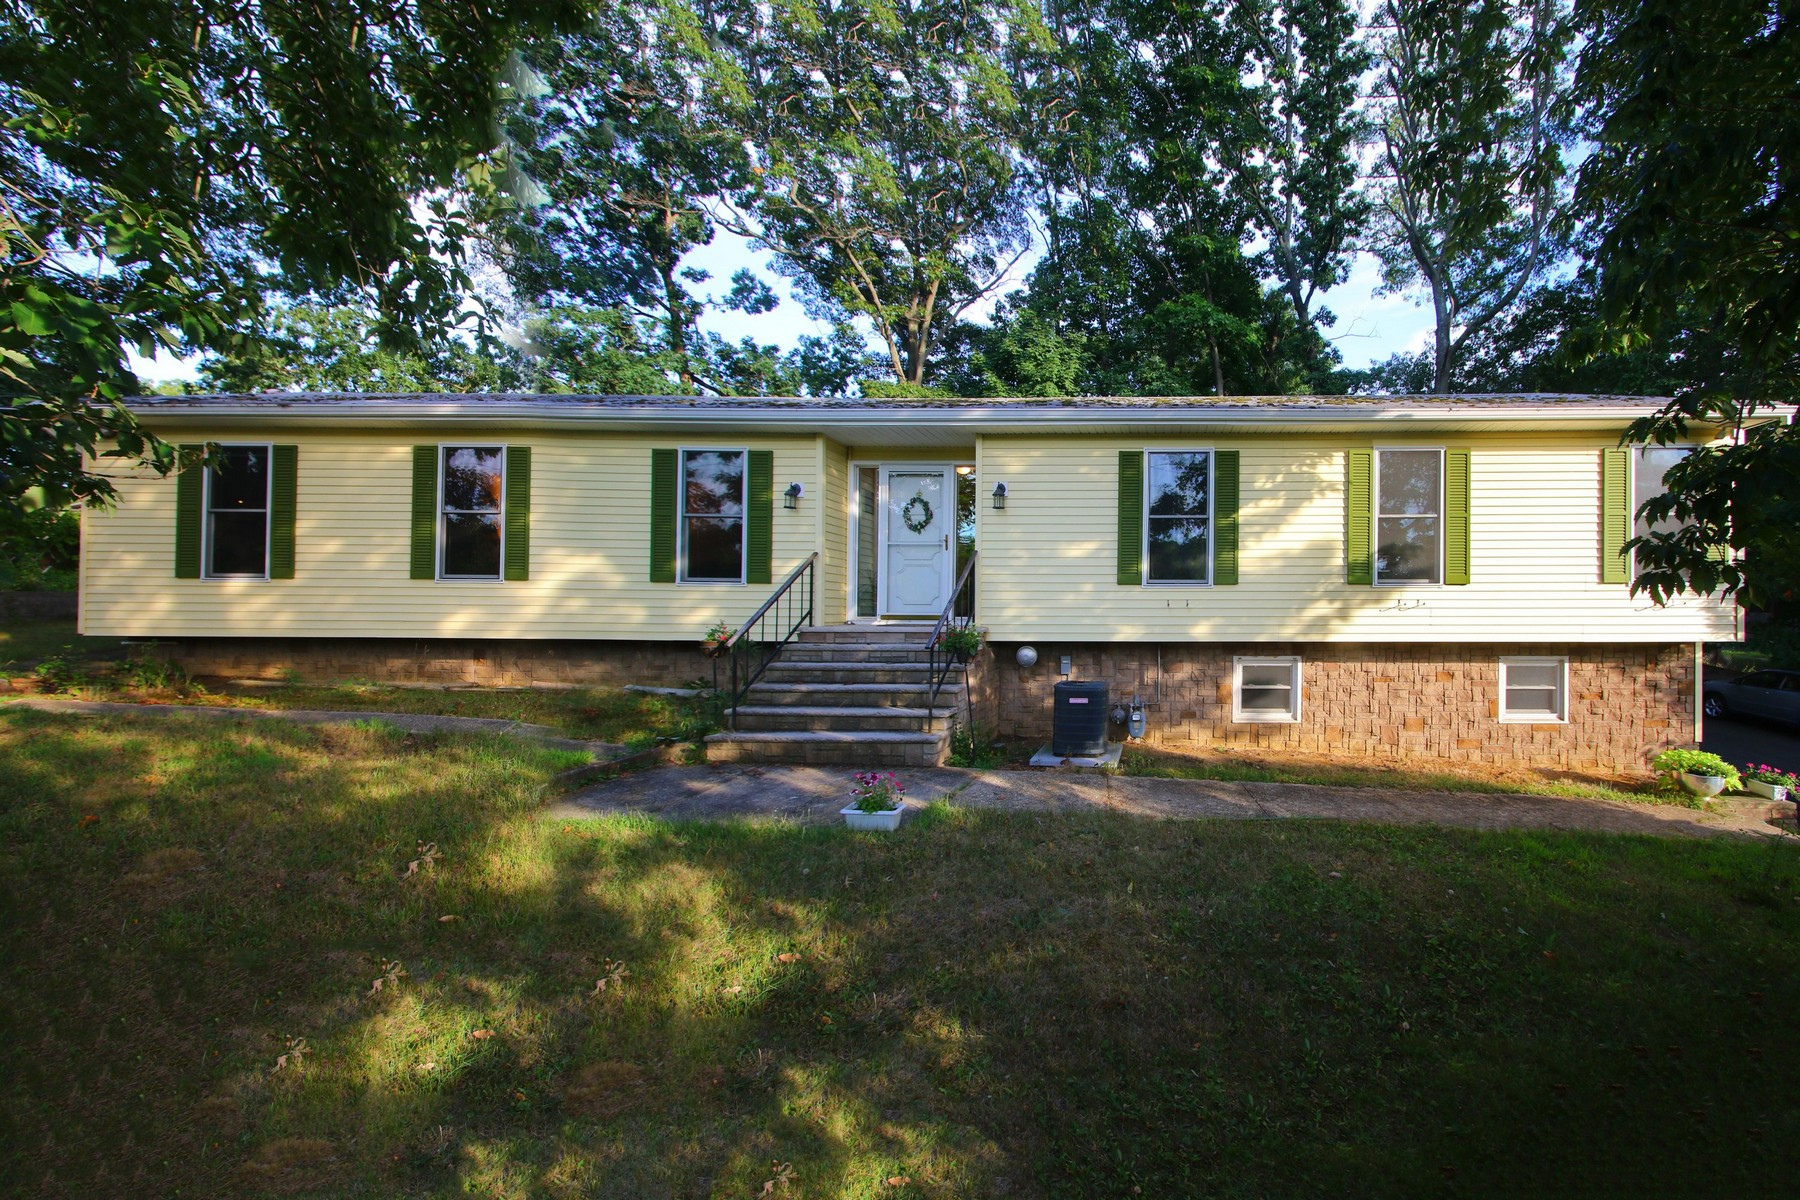 Single Family Home for Sale at Middletown Township Hilton Park Area Ranch 415 Navesink Ave Atlantic Highlands, New Jersey 07716 United States